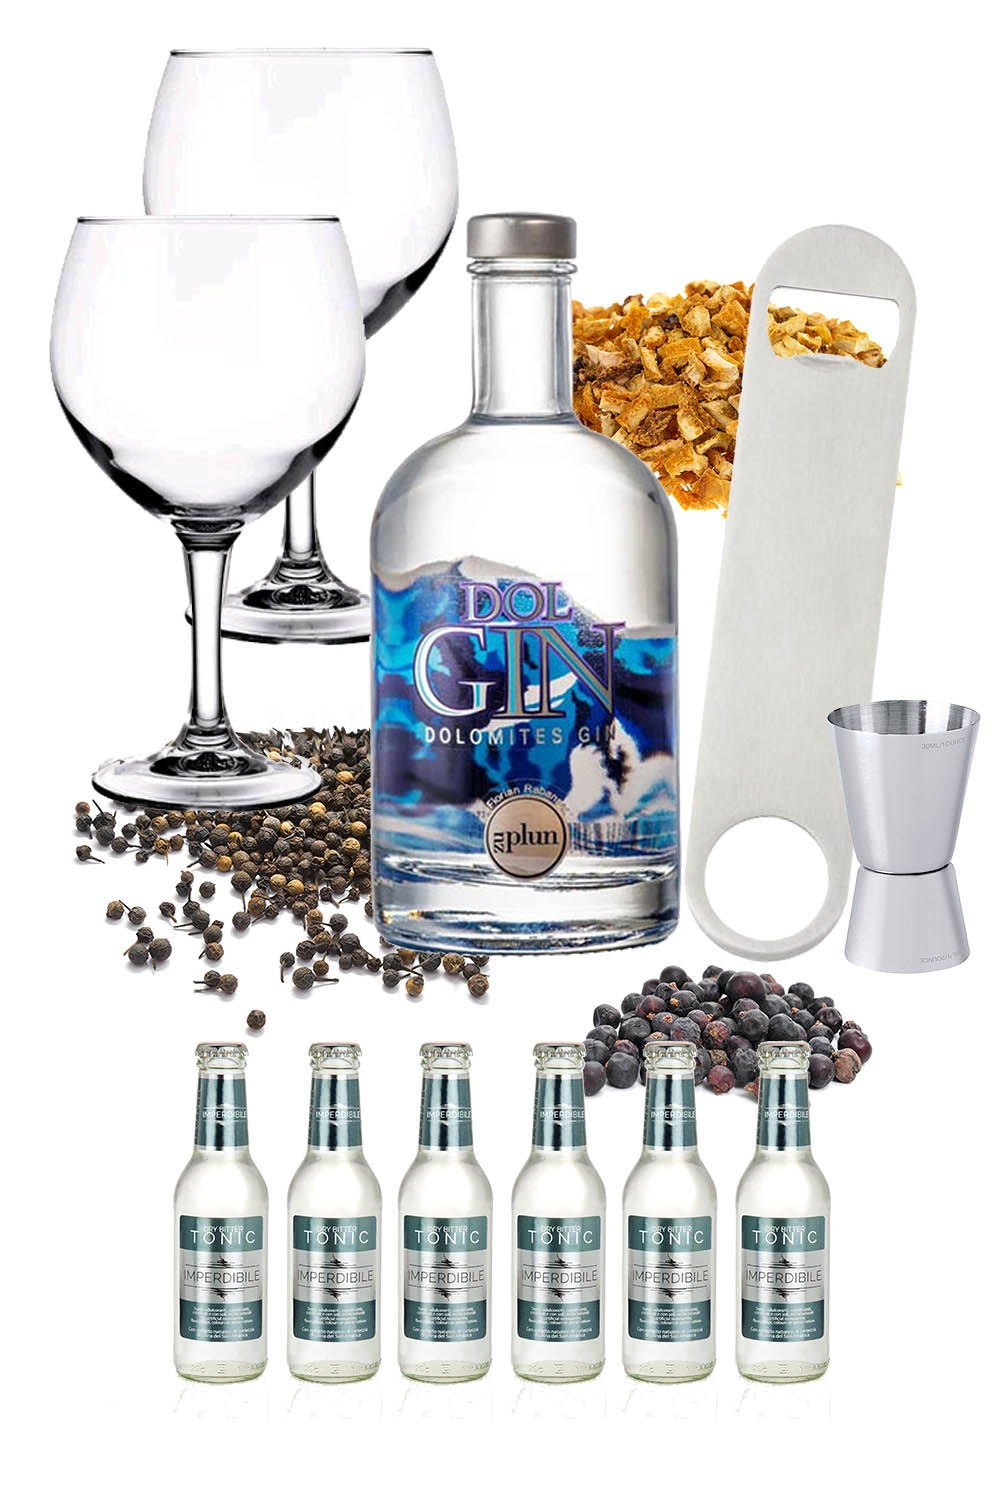 Dol Gin – Mission Ginpossible